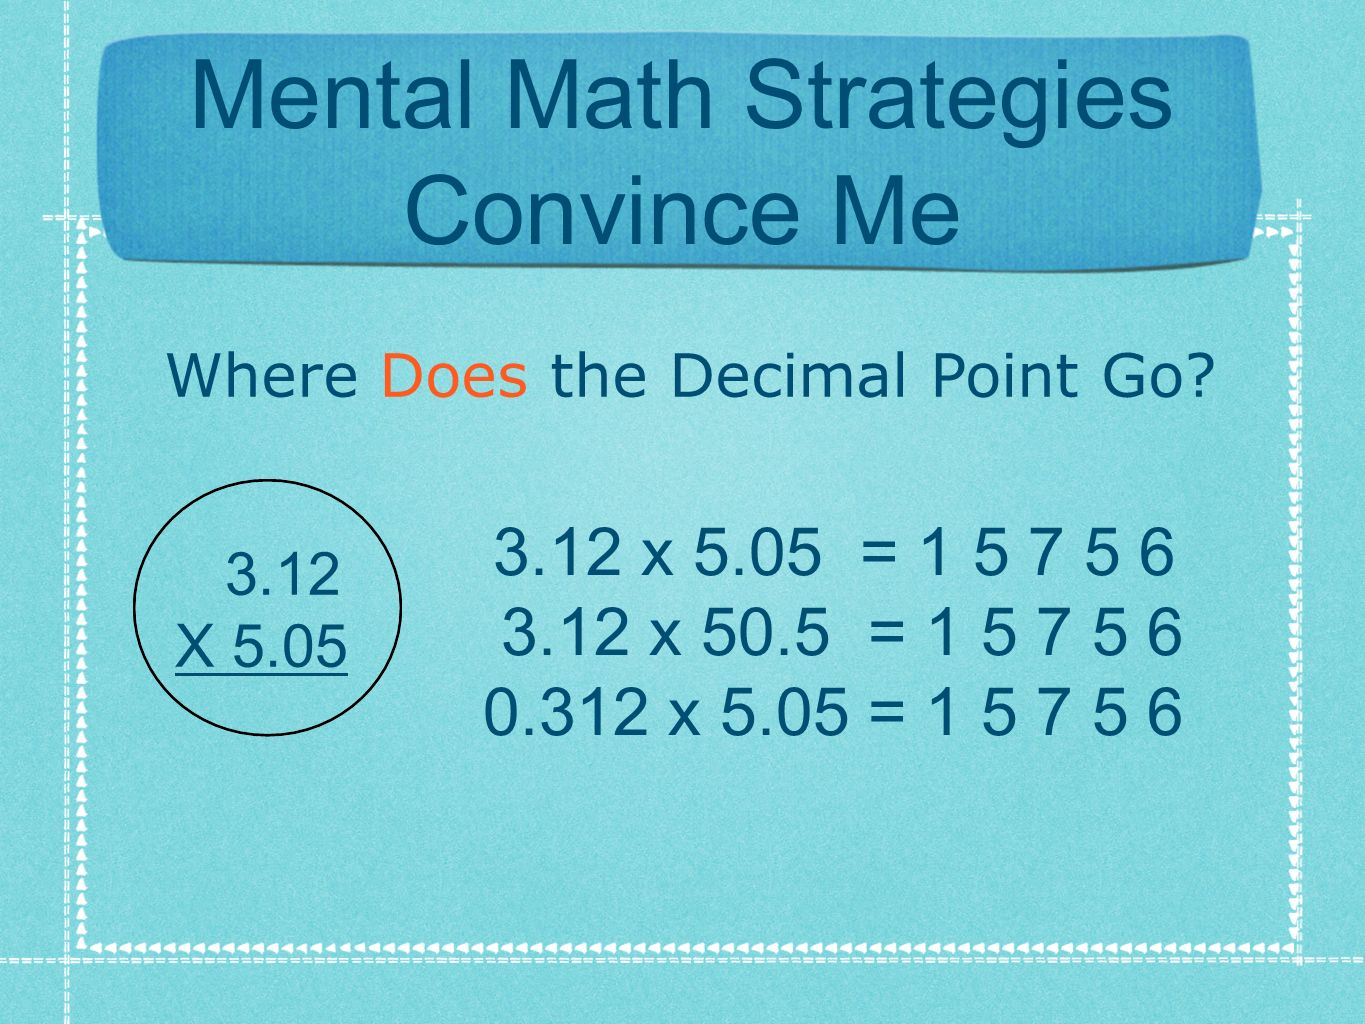 Mental Math Strategies Convince Me Where Does the Decimal Point Go? 3.12 x 5.05 = 1 5 7 5 6 3.12 x 50.5 = 1 5 7 5 6 0.312 x 5.05 = 1 5 7 5 6 3.12 X 5.